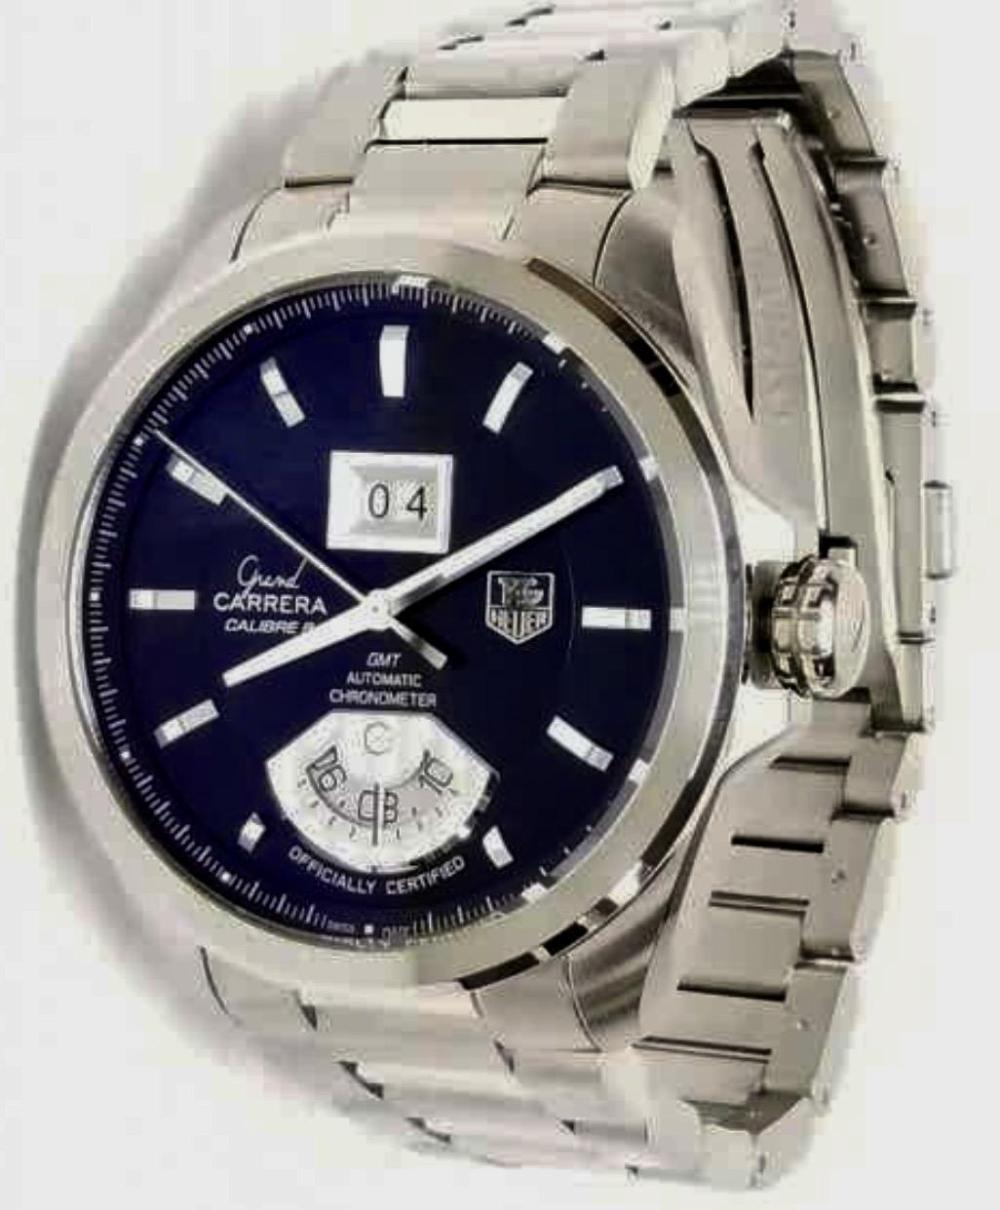 Tag Heuer Grand GMT Automatic Carrera St. Steel Watch with Box